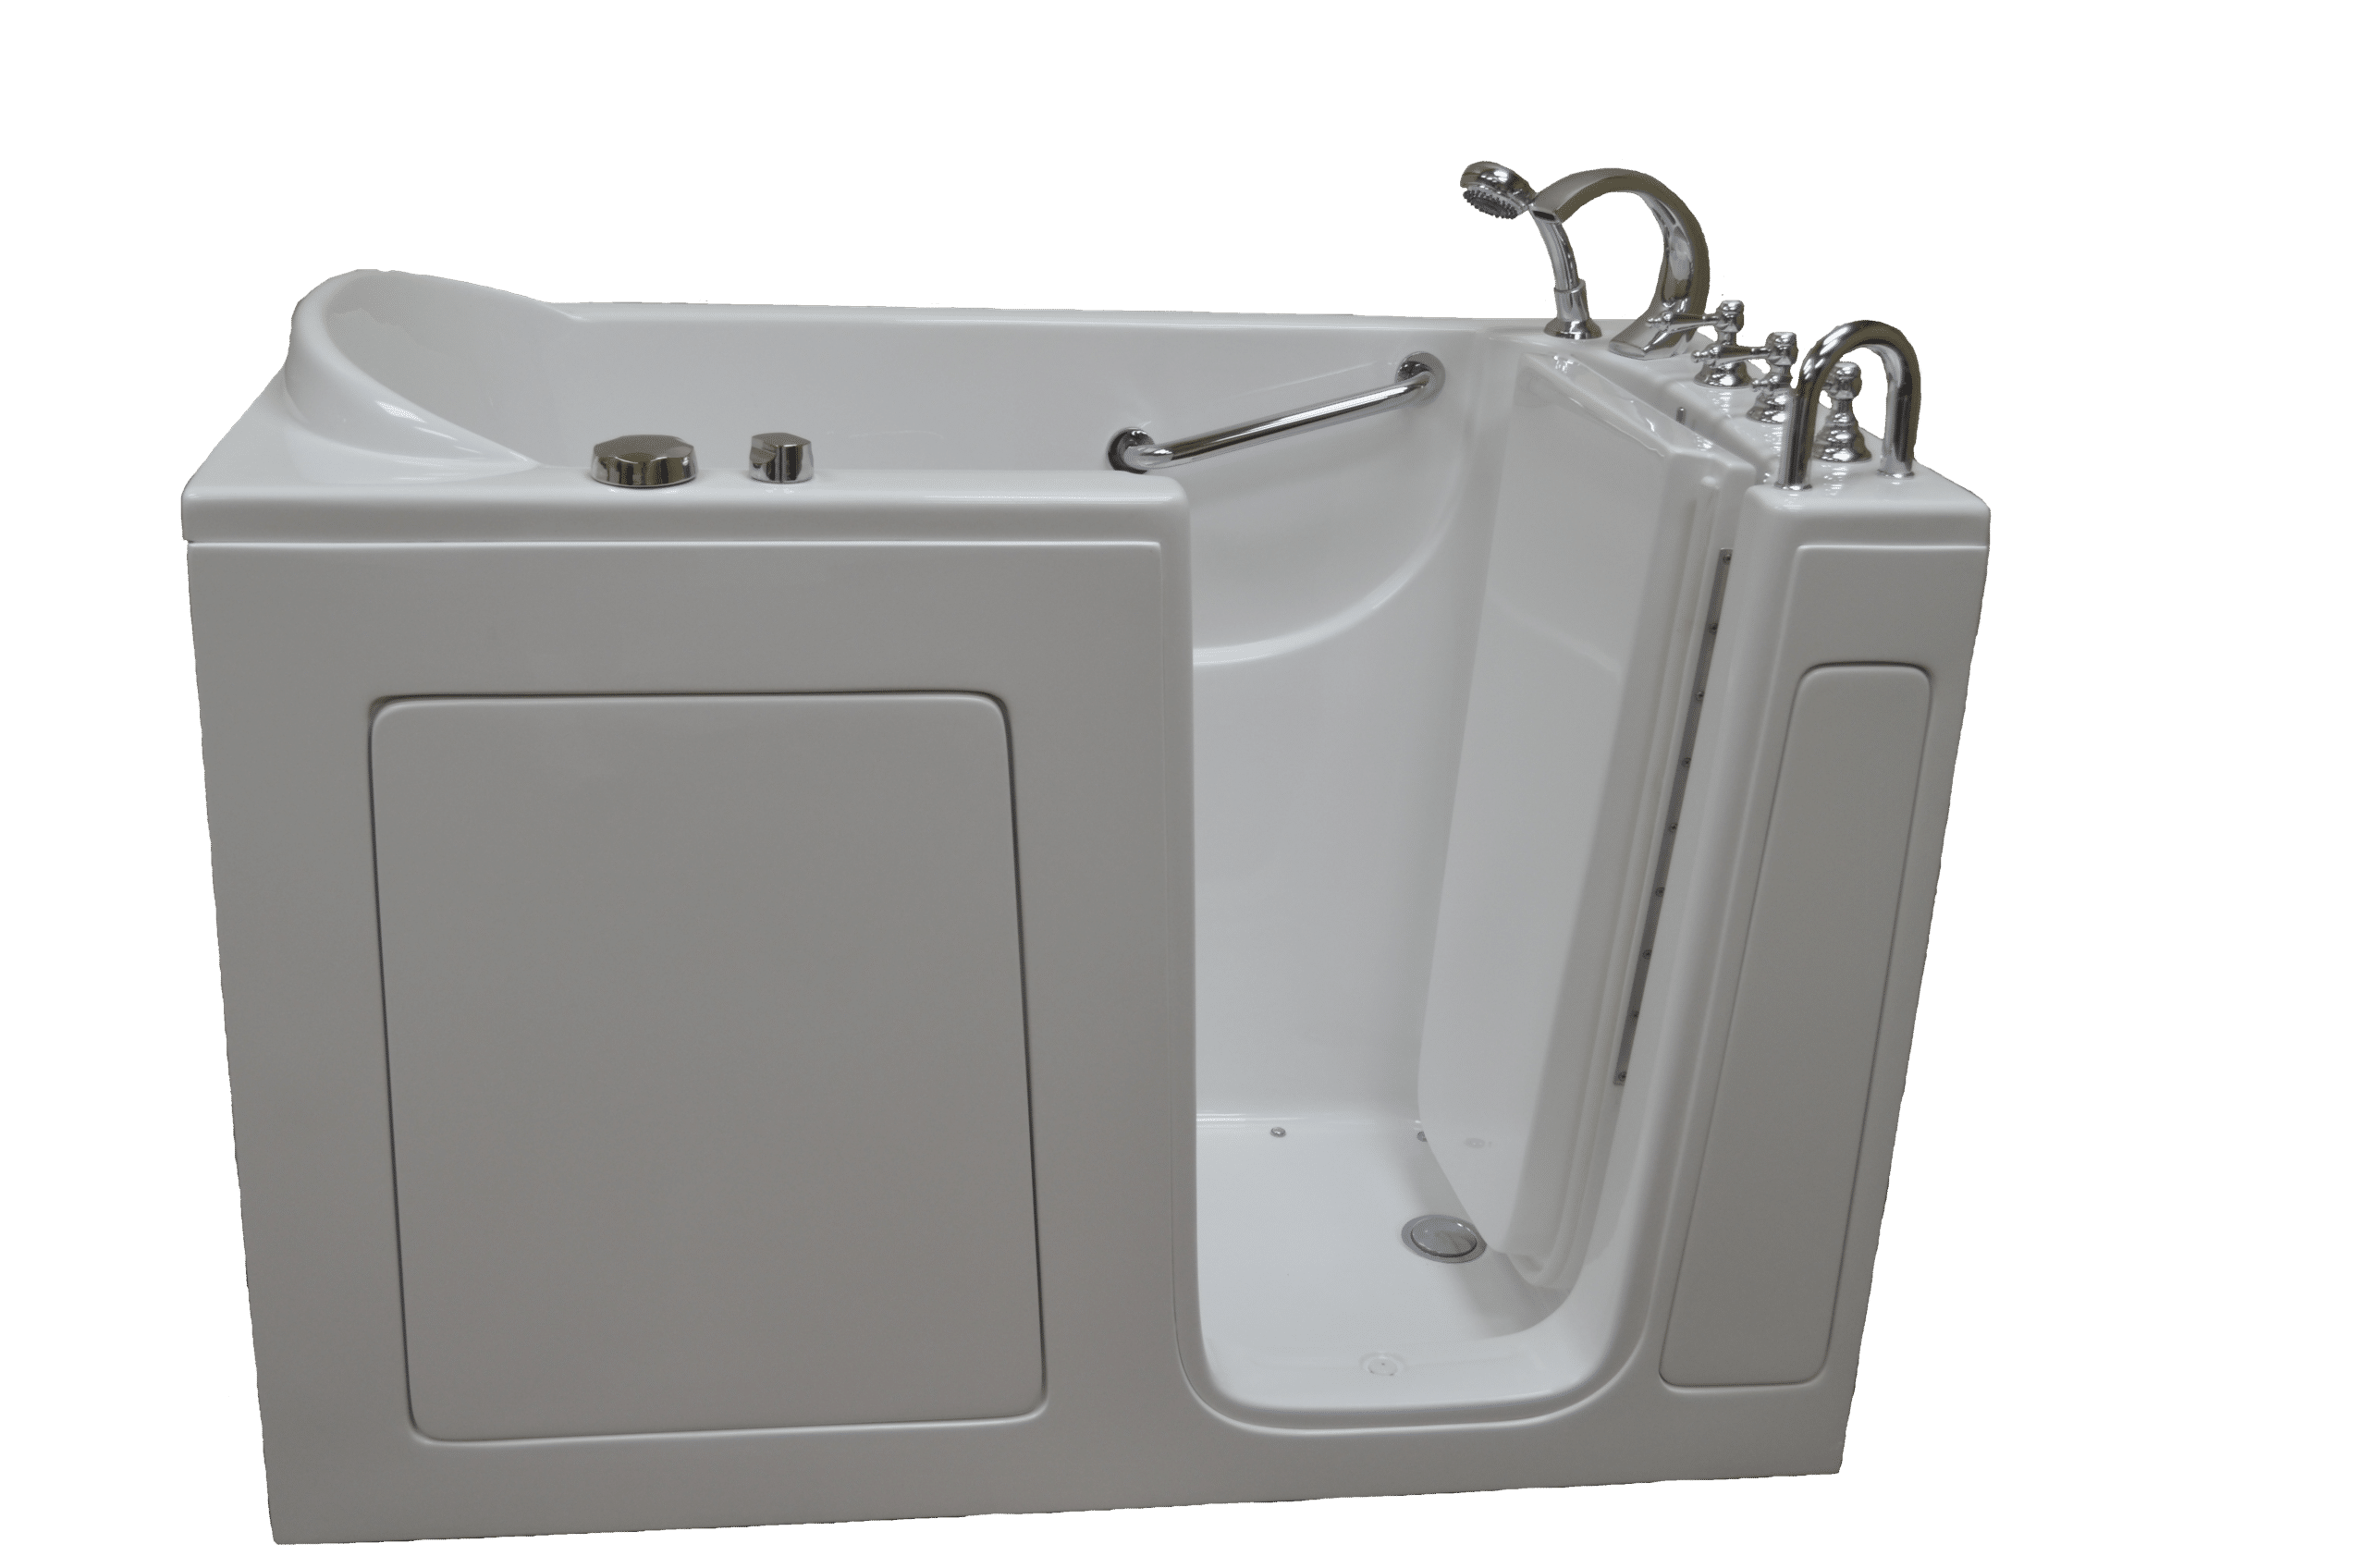 Envy Discount Walk In Bath Tub Comparison And Installation Support